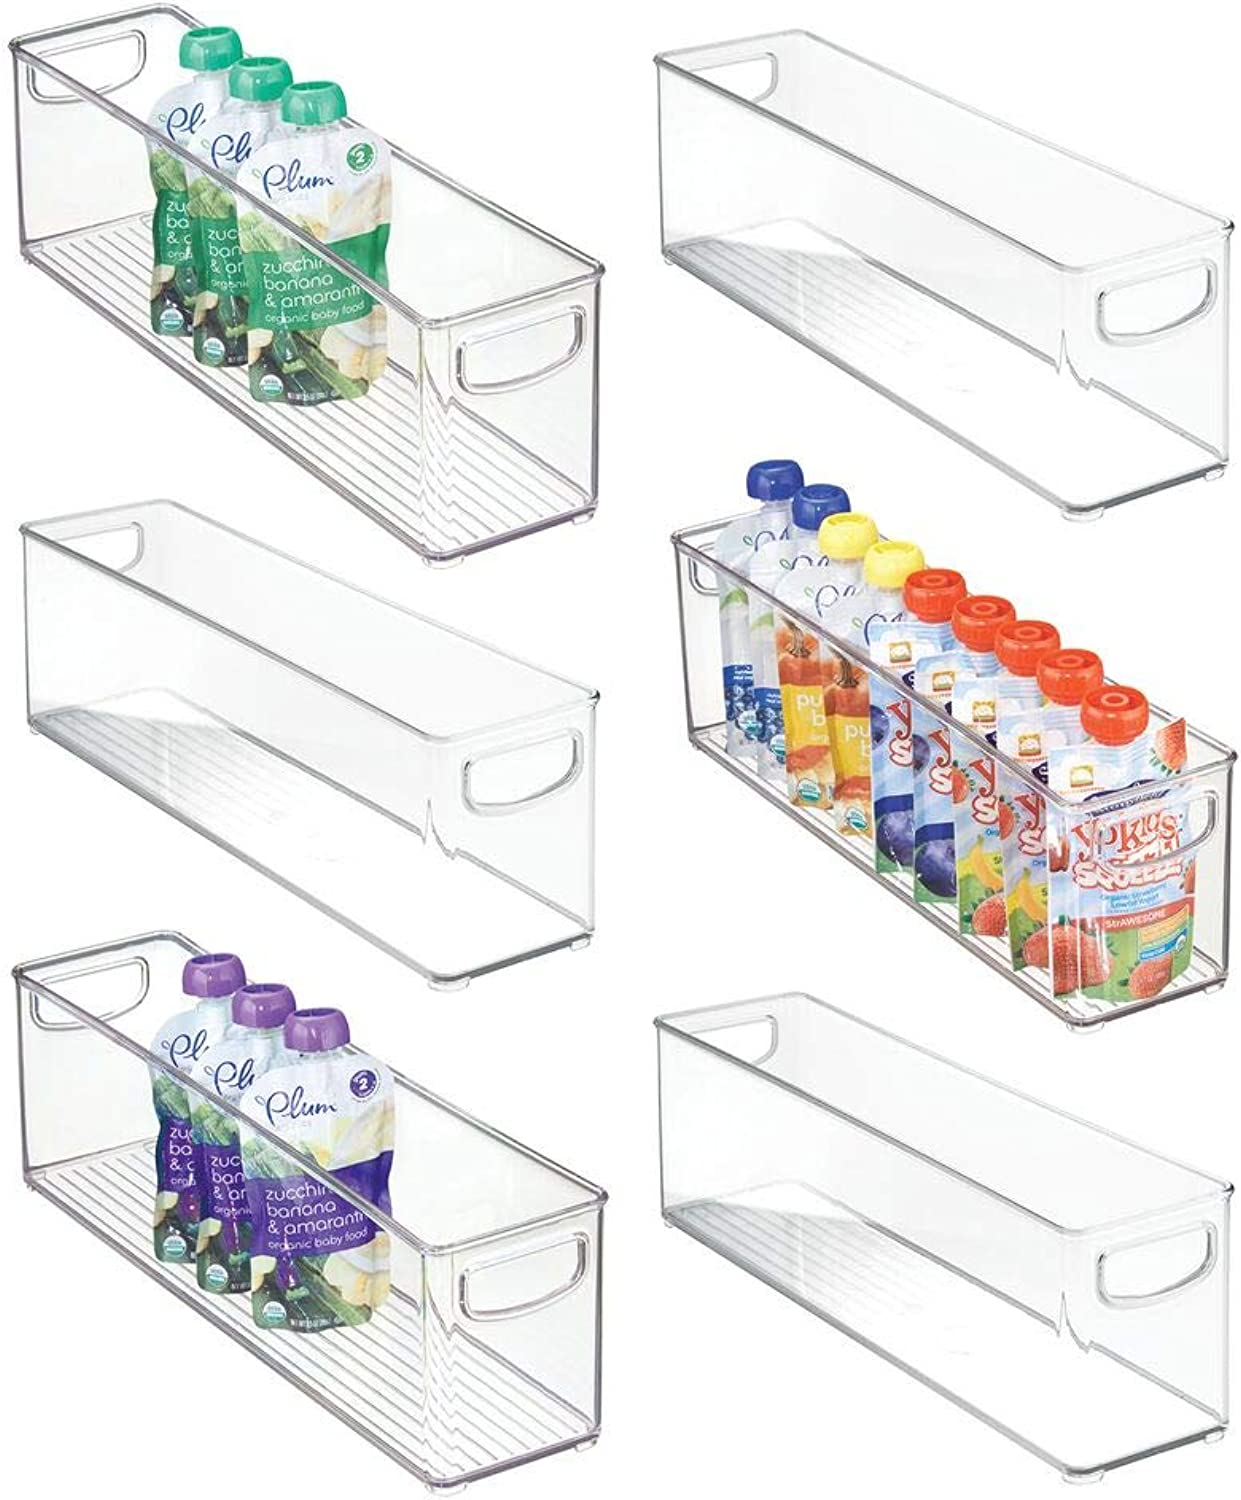 MDesign Kitchen Refrigerator Cabinet or Pantry Baby Food Storage Organizer Bin with Handles for Breast Milk, Pouches, Jars, Bottles, Formula, Juice Boxes - BPA Free, 16  x 4  x 5  - 6 Pack - Clear